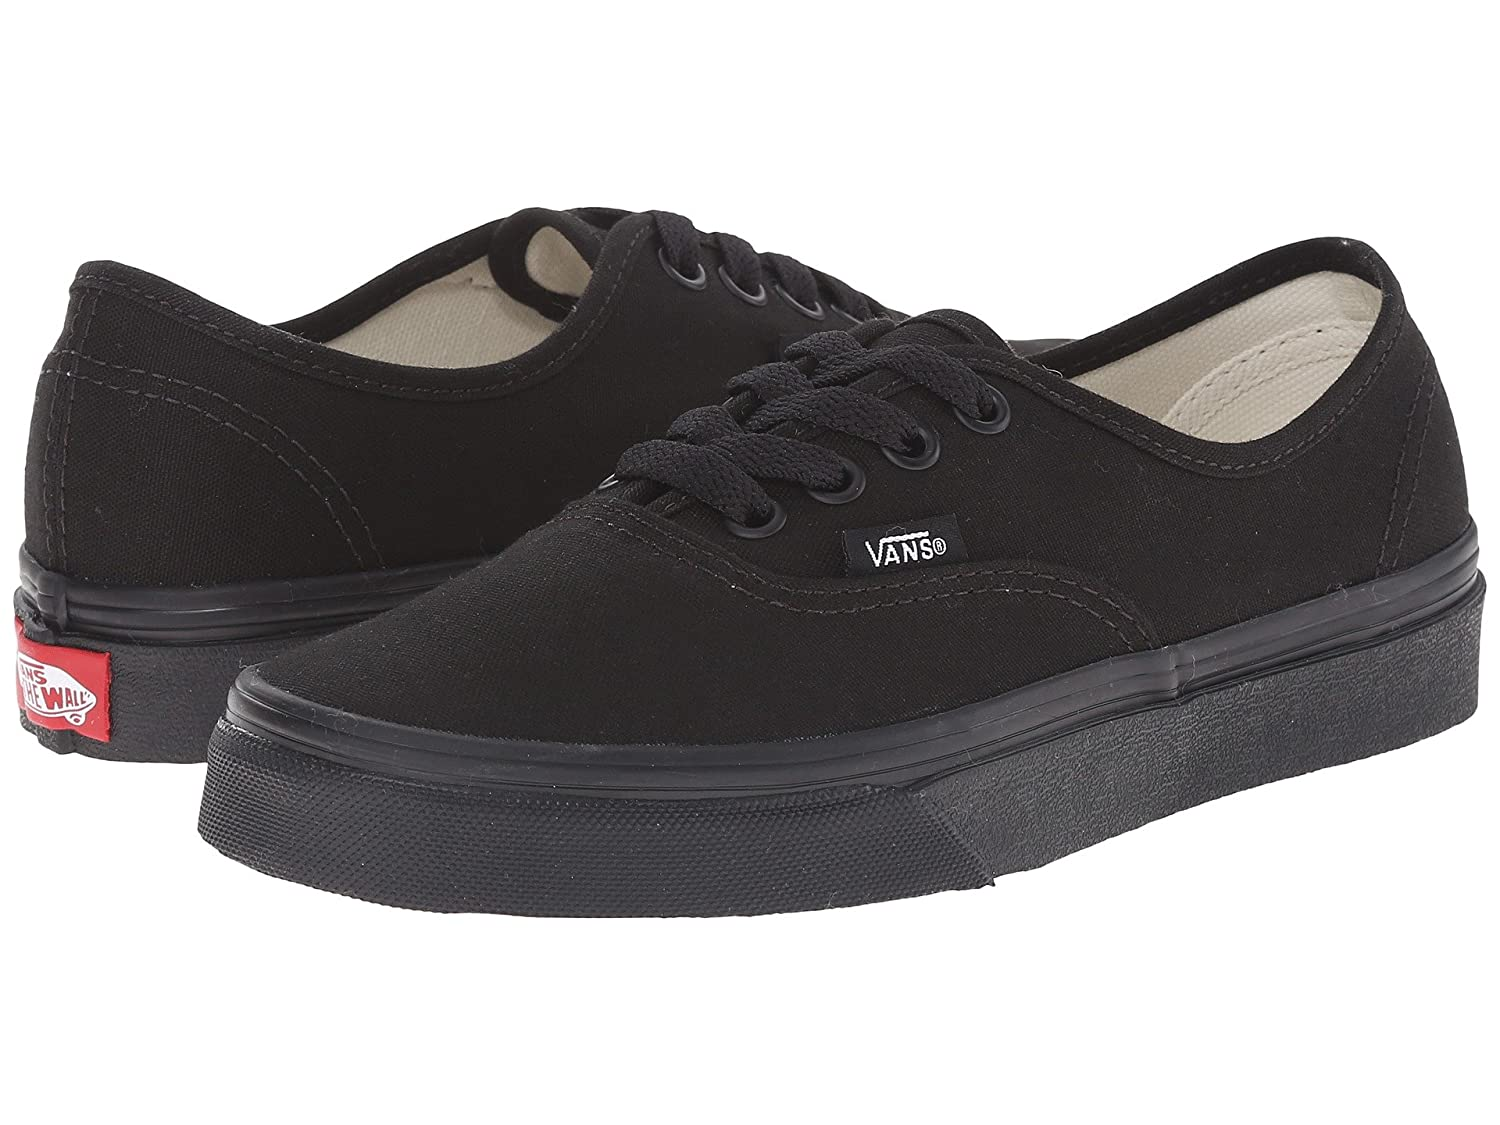 Vans Unisex Authentic Canvas Shoes B0771THQXD 8 D(M) US|Black and Black